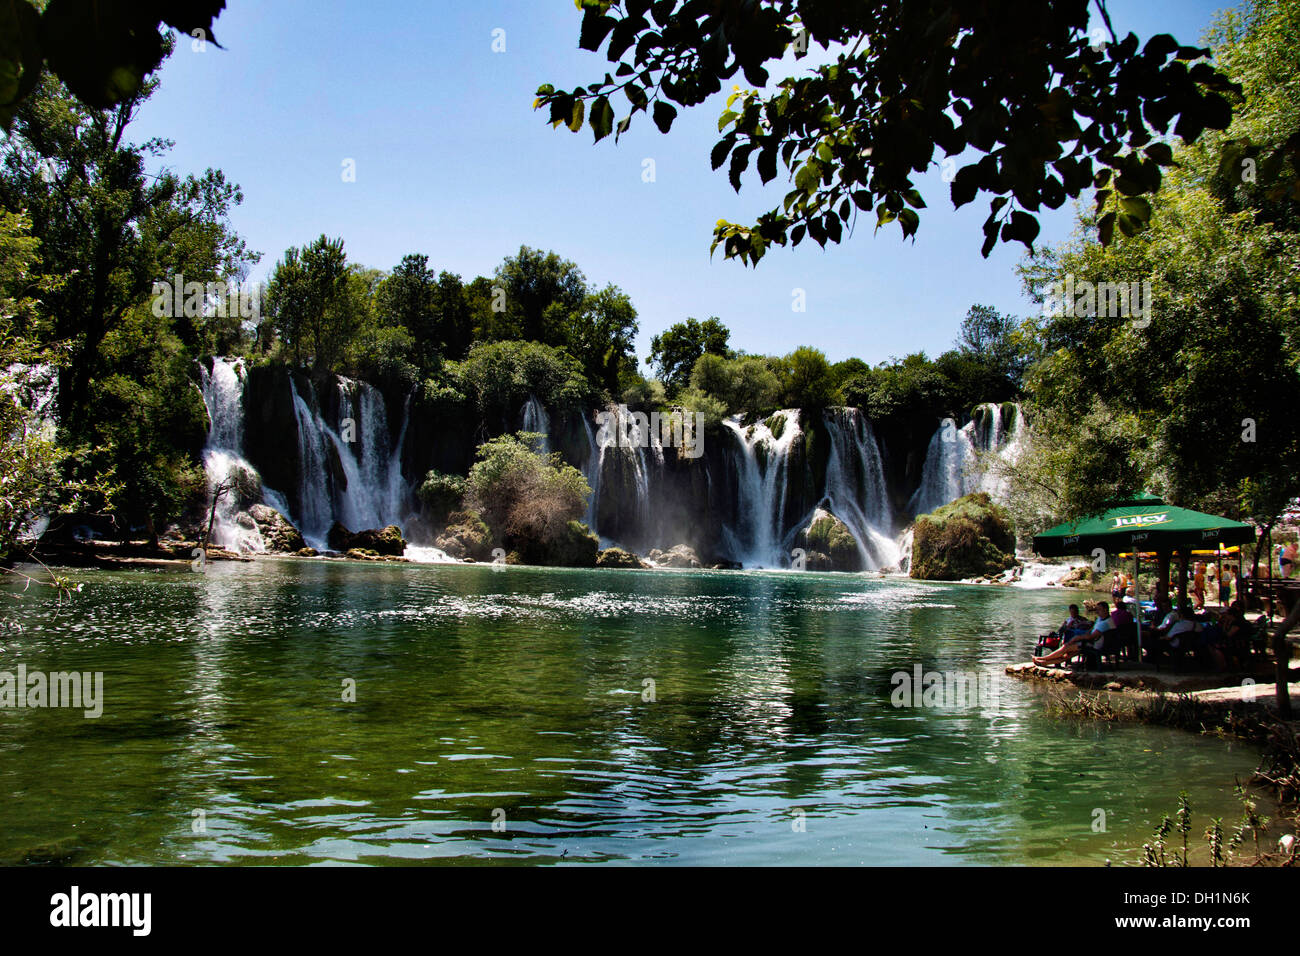 Kravice waterfalls Bosnia Herzegovina - Stock Image